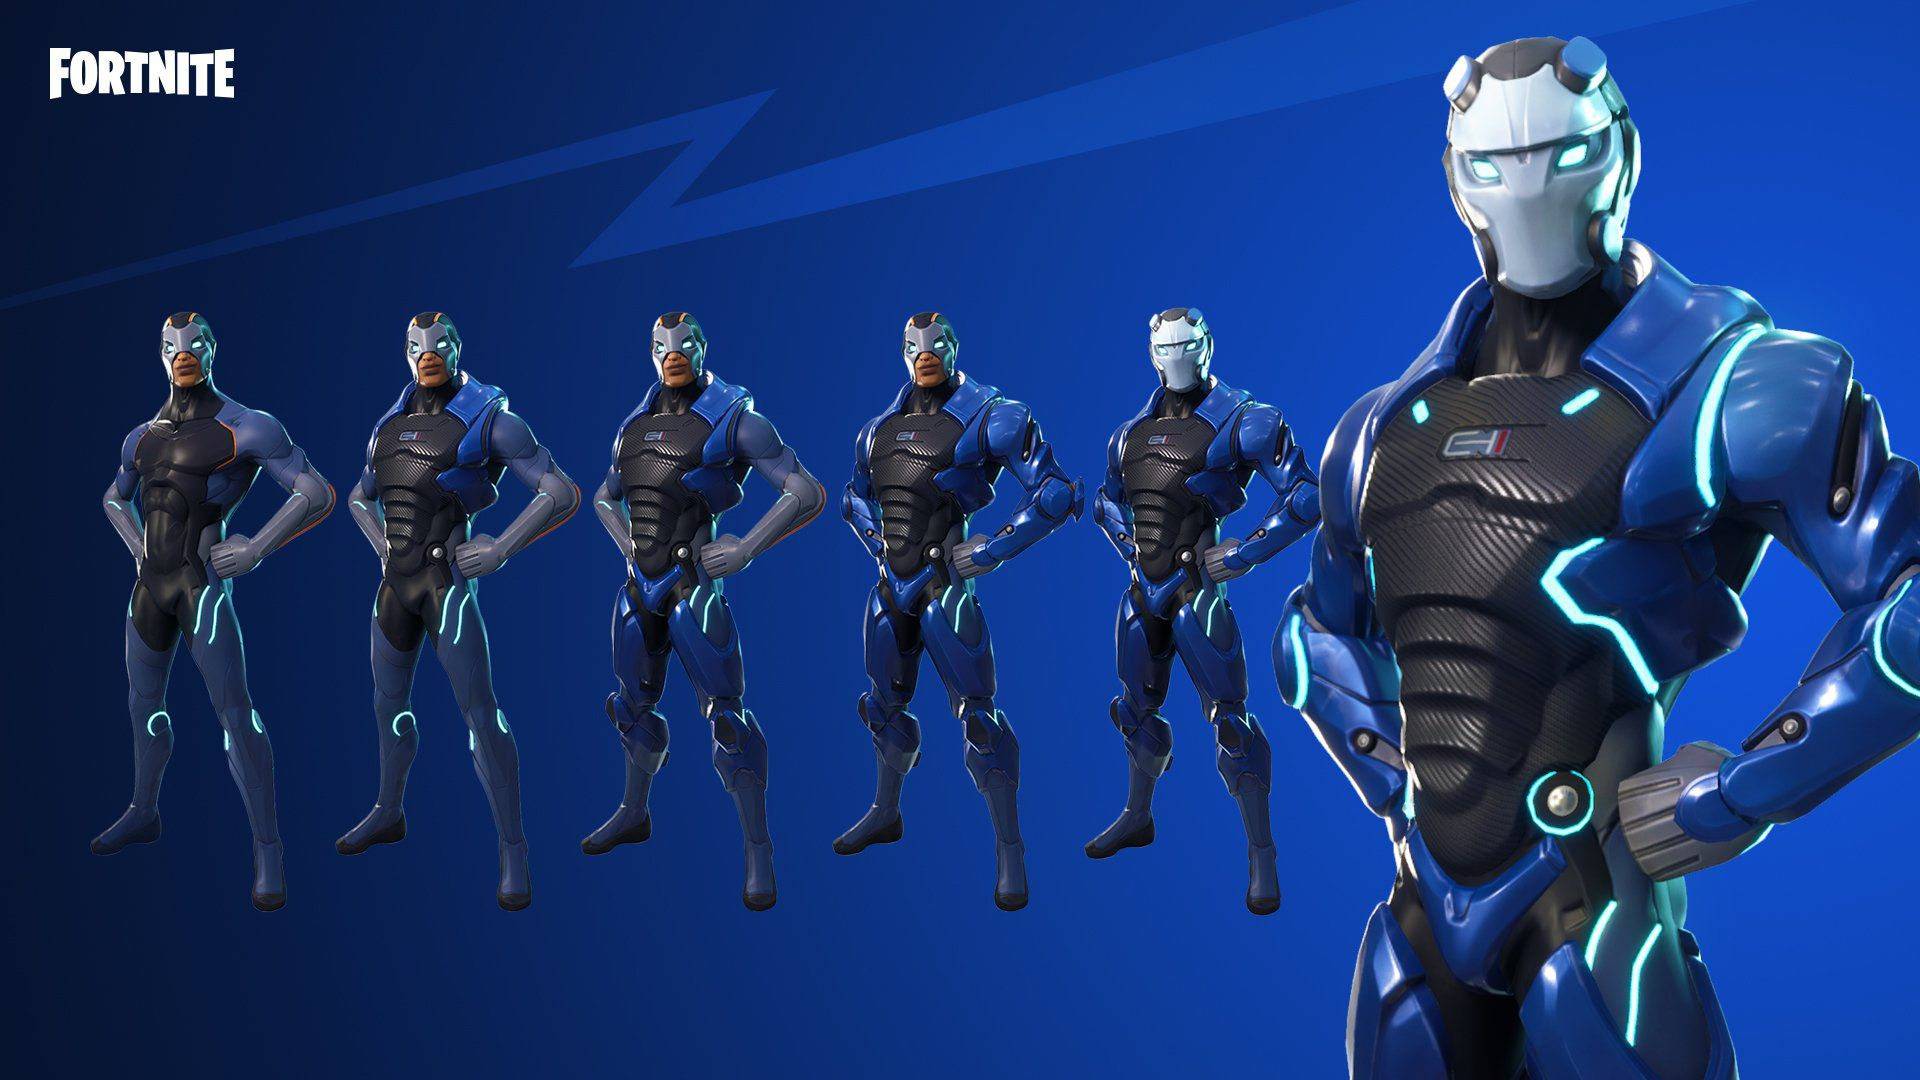 Fortnite Skin Wallpapers   Top Fortnite Skin Backgrounds 1920x1080